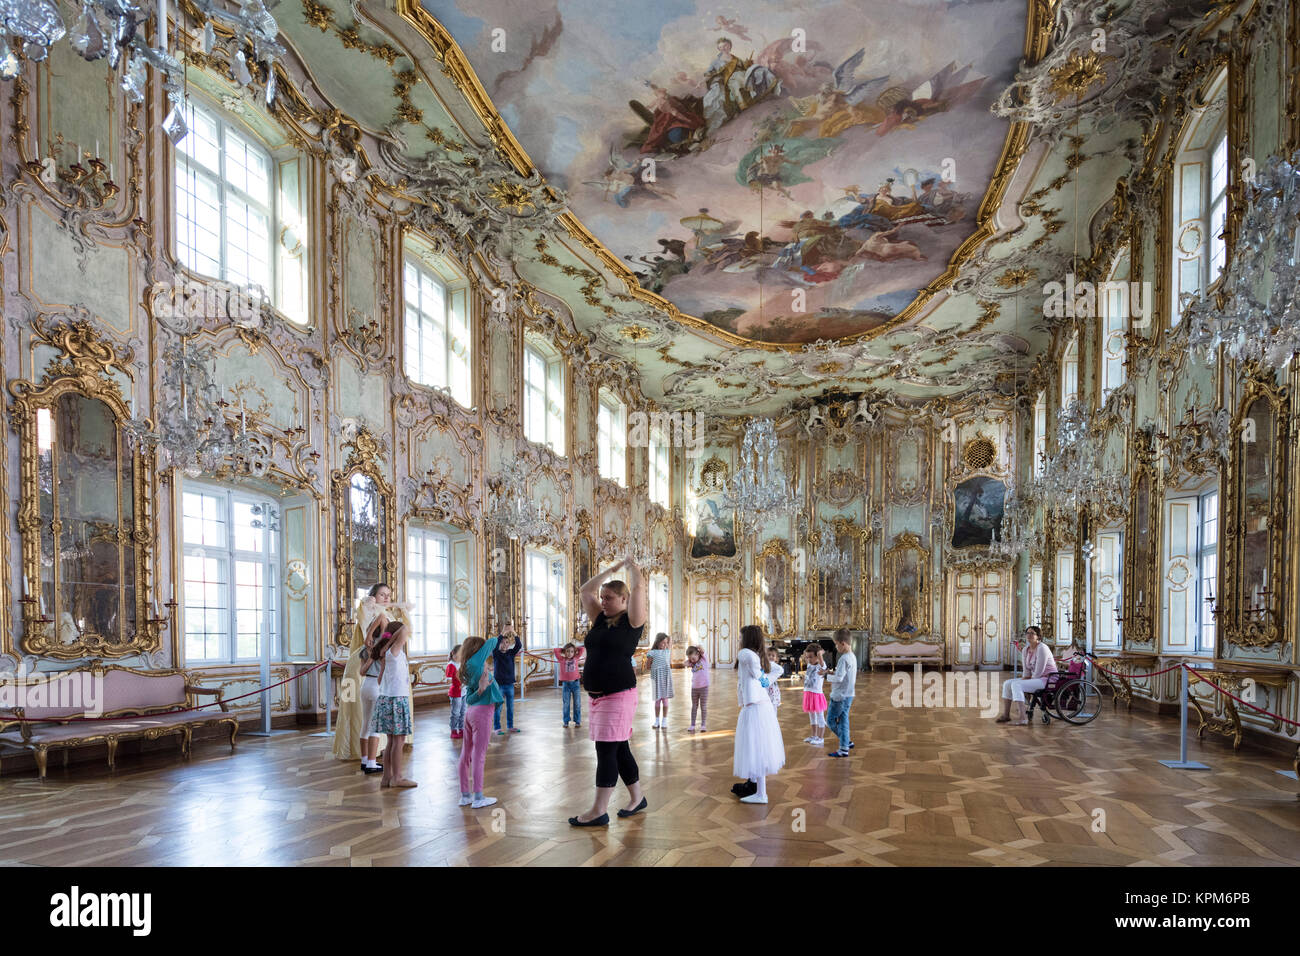 Children's dance class in the Rococco ballroom (1770) of the Schaezlerpalais baroque palace, Augsburg, Bavaria, - Stock Image